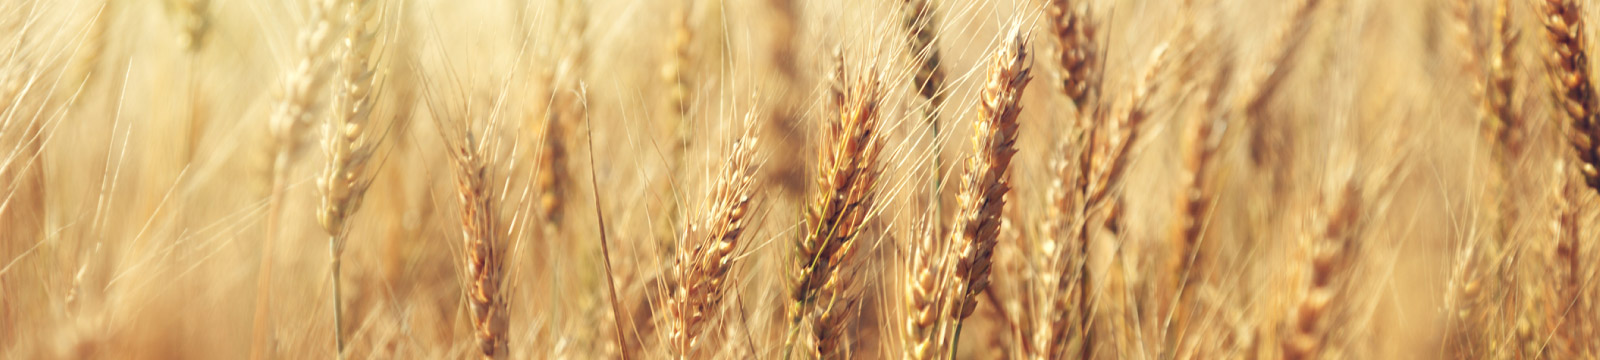 Close up of grain field